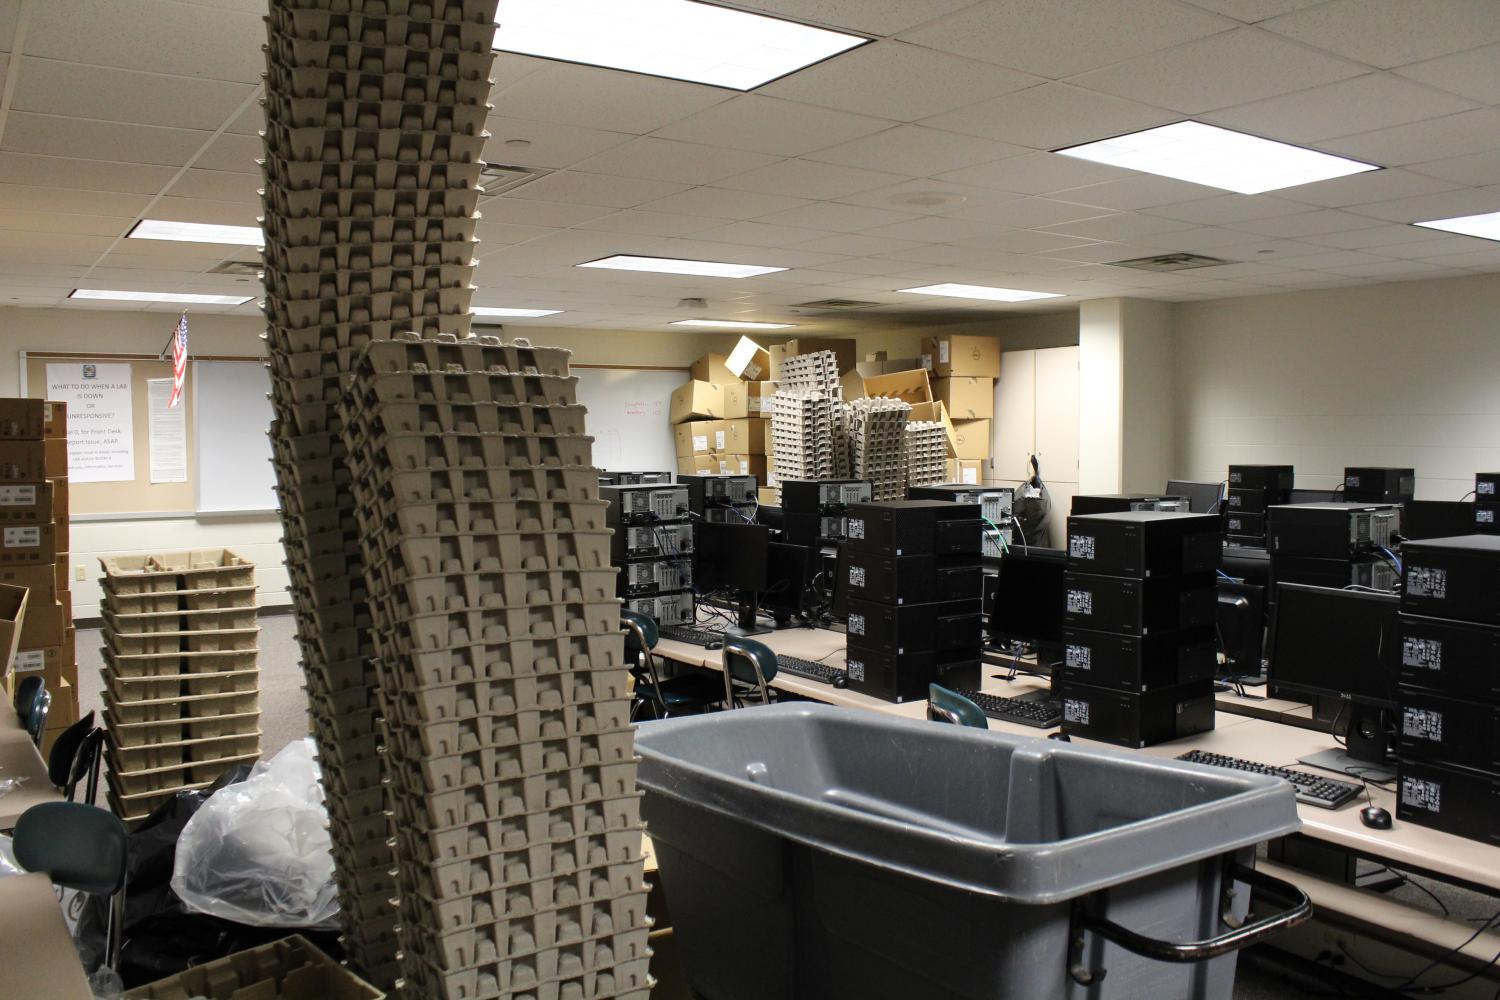 New computers arrive for teachers!